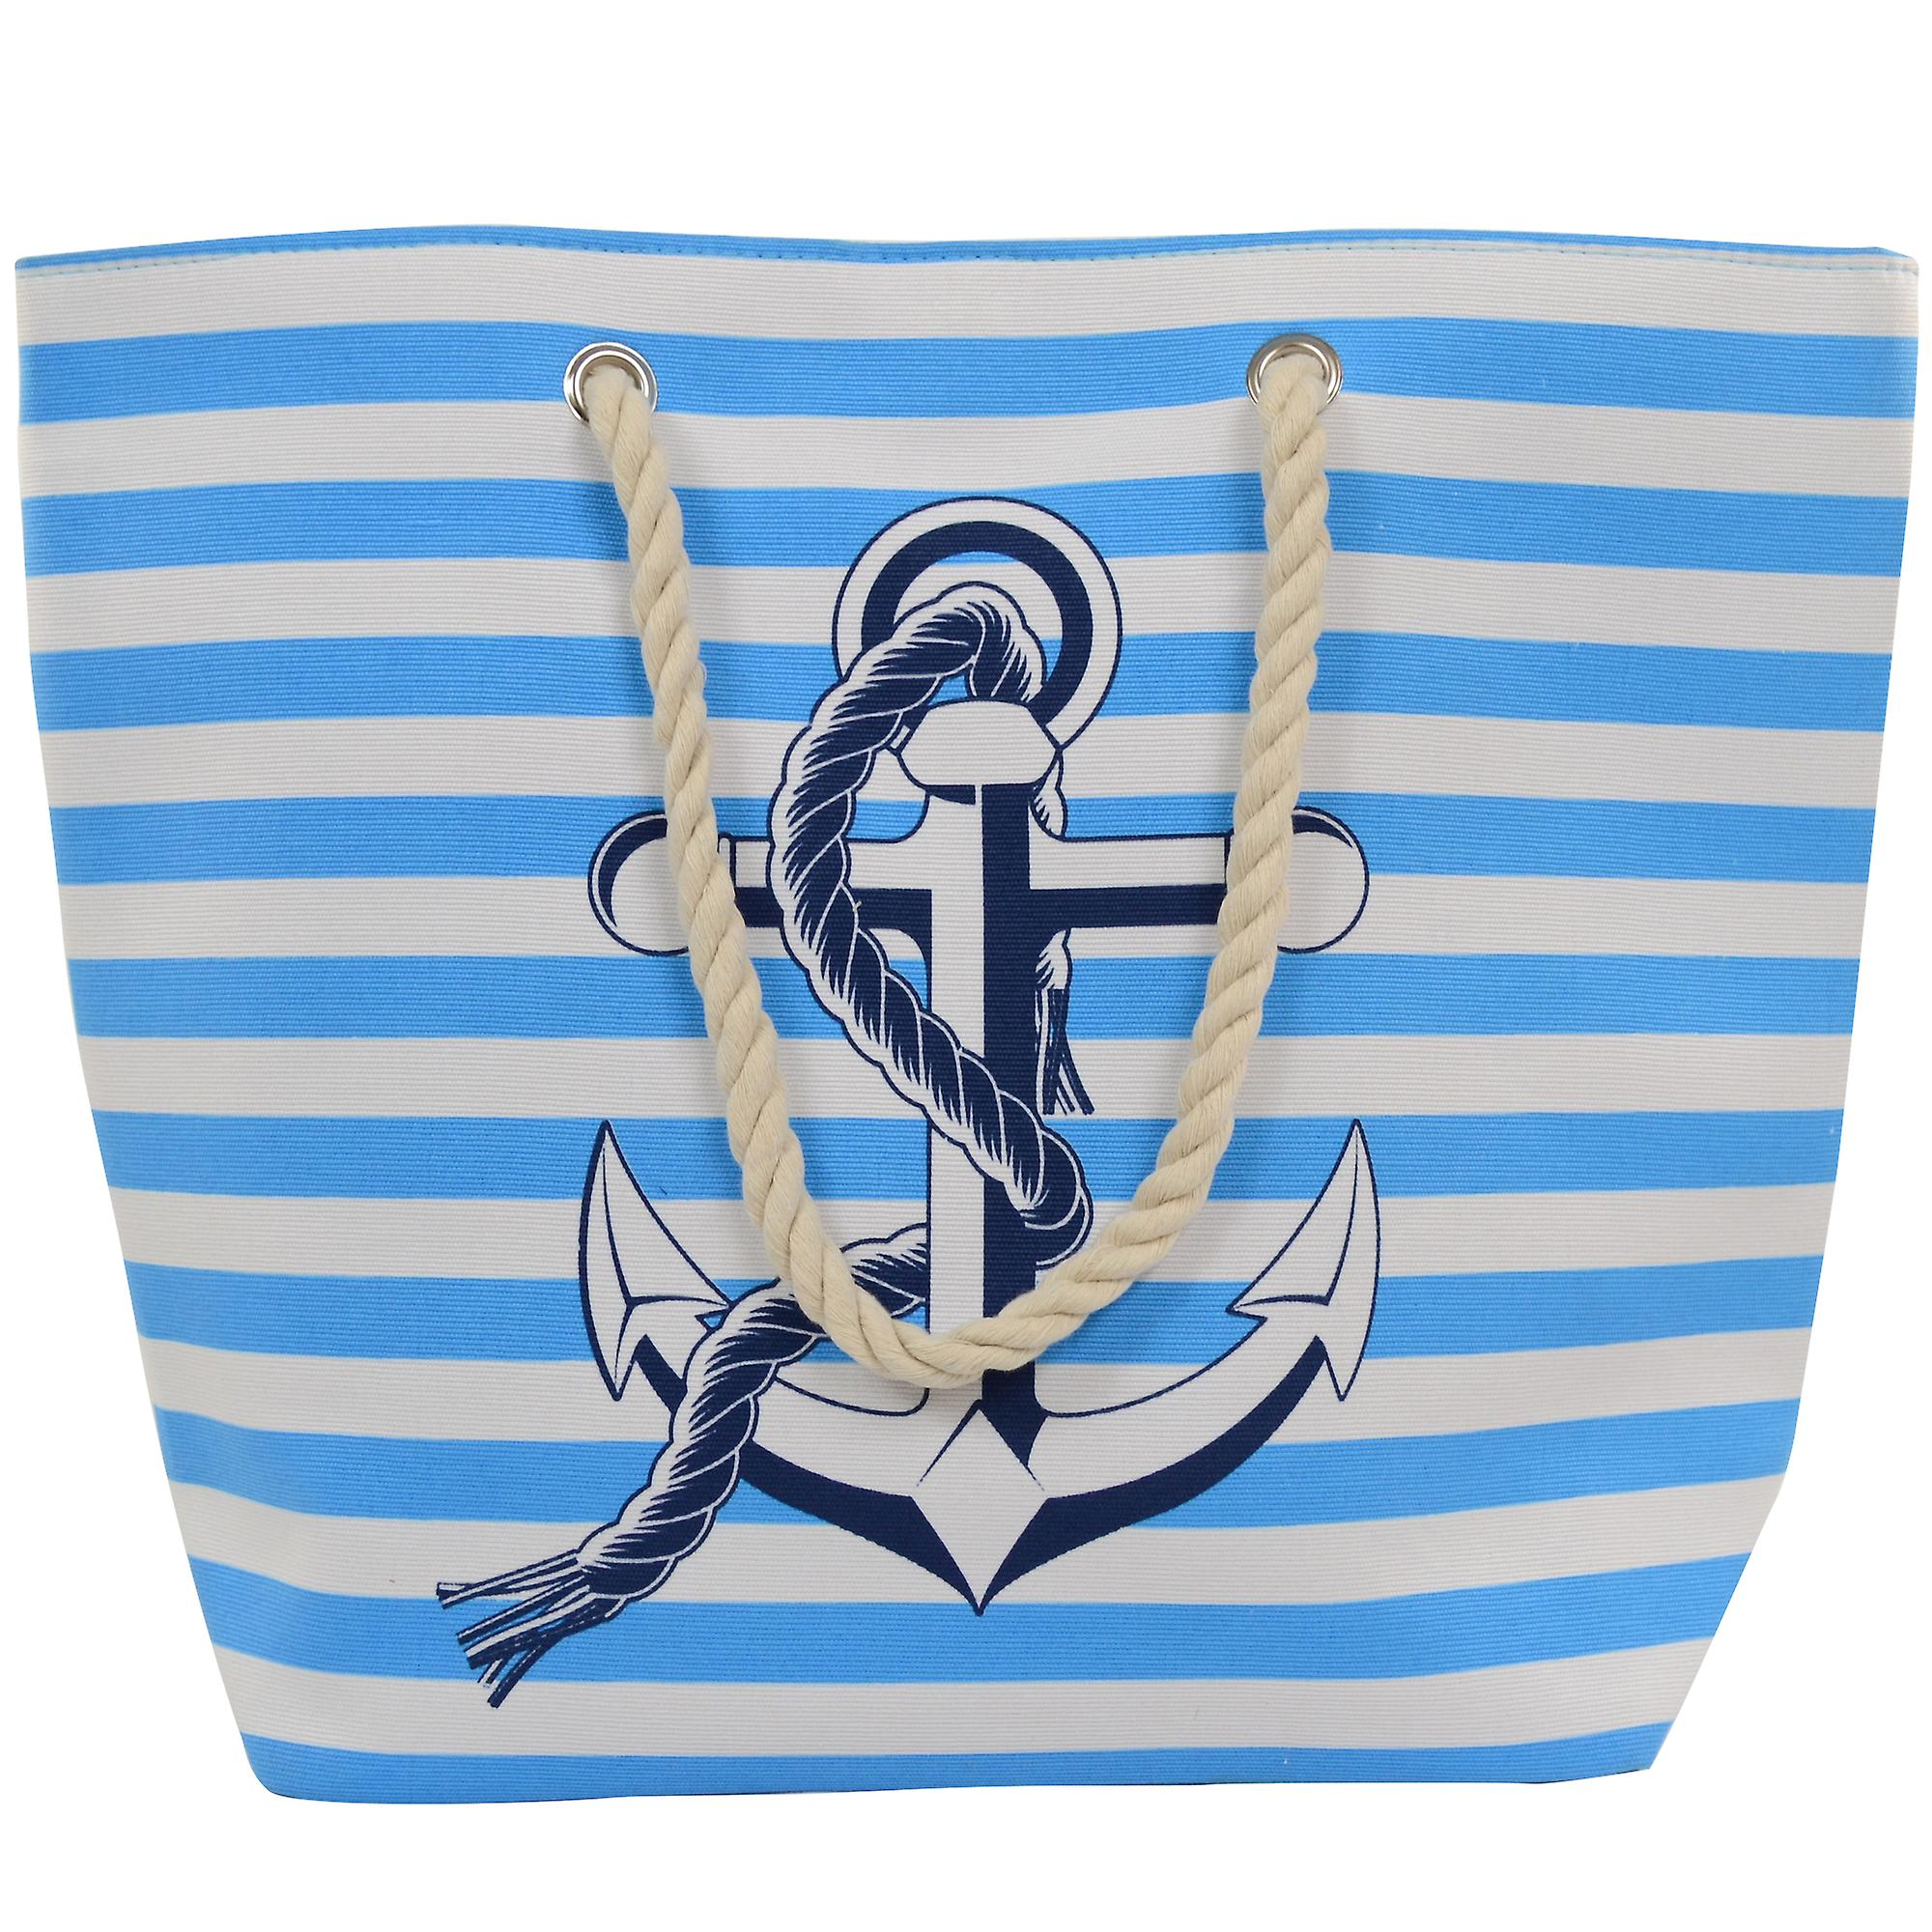 Ladies / Womens Large  Striped Canvas Beach / Holiday / Summer / Tote Bag -  Sky Blue